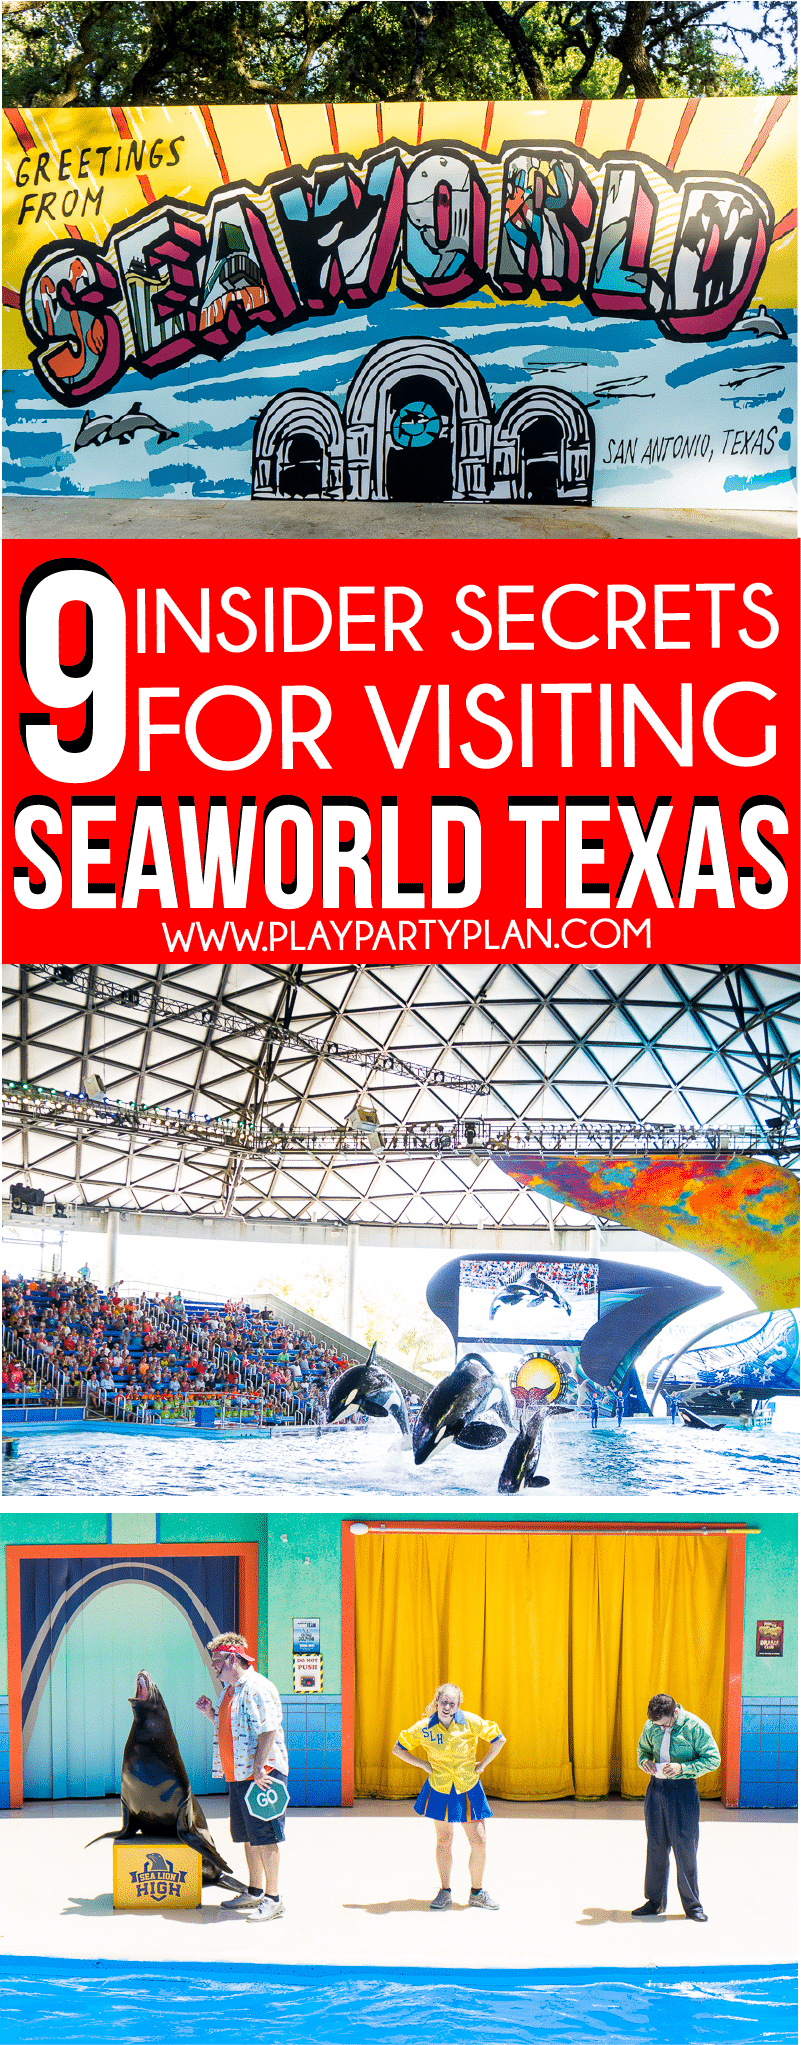 9 Insider Secrets for Visiting SeaWorld San Antonio TX on universal map, disney's animal kingdom map, disneyland map, cedar point map, discovery cove map, michigan adventure map, zoo map, busch gardens map, disney blizzard beach map, san antonio riverwalk map, san diego map, islands of adventure map, knotts berry farm map, aquatica map,